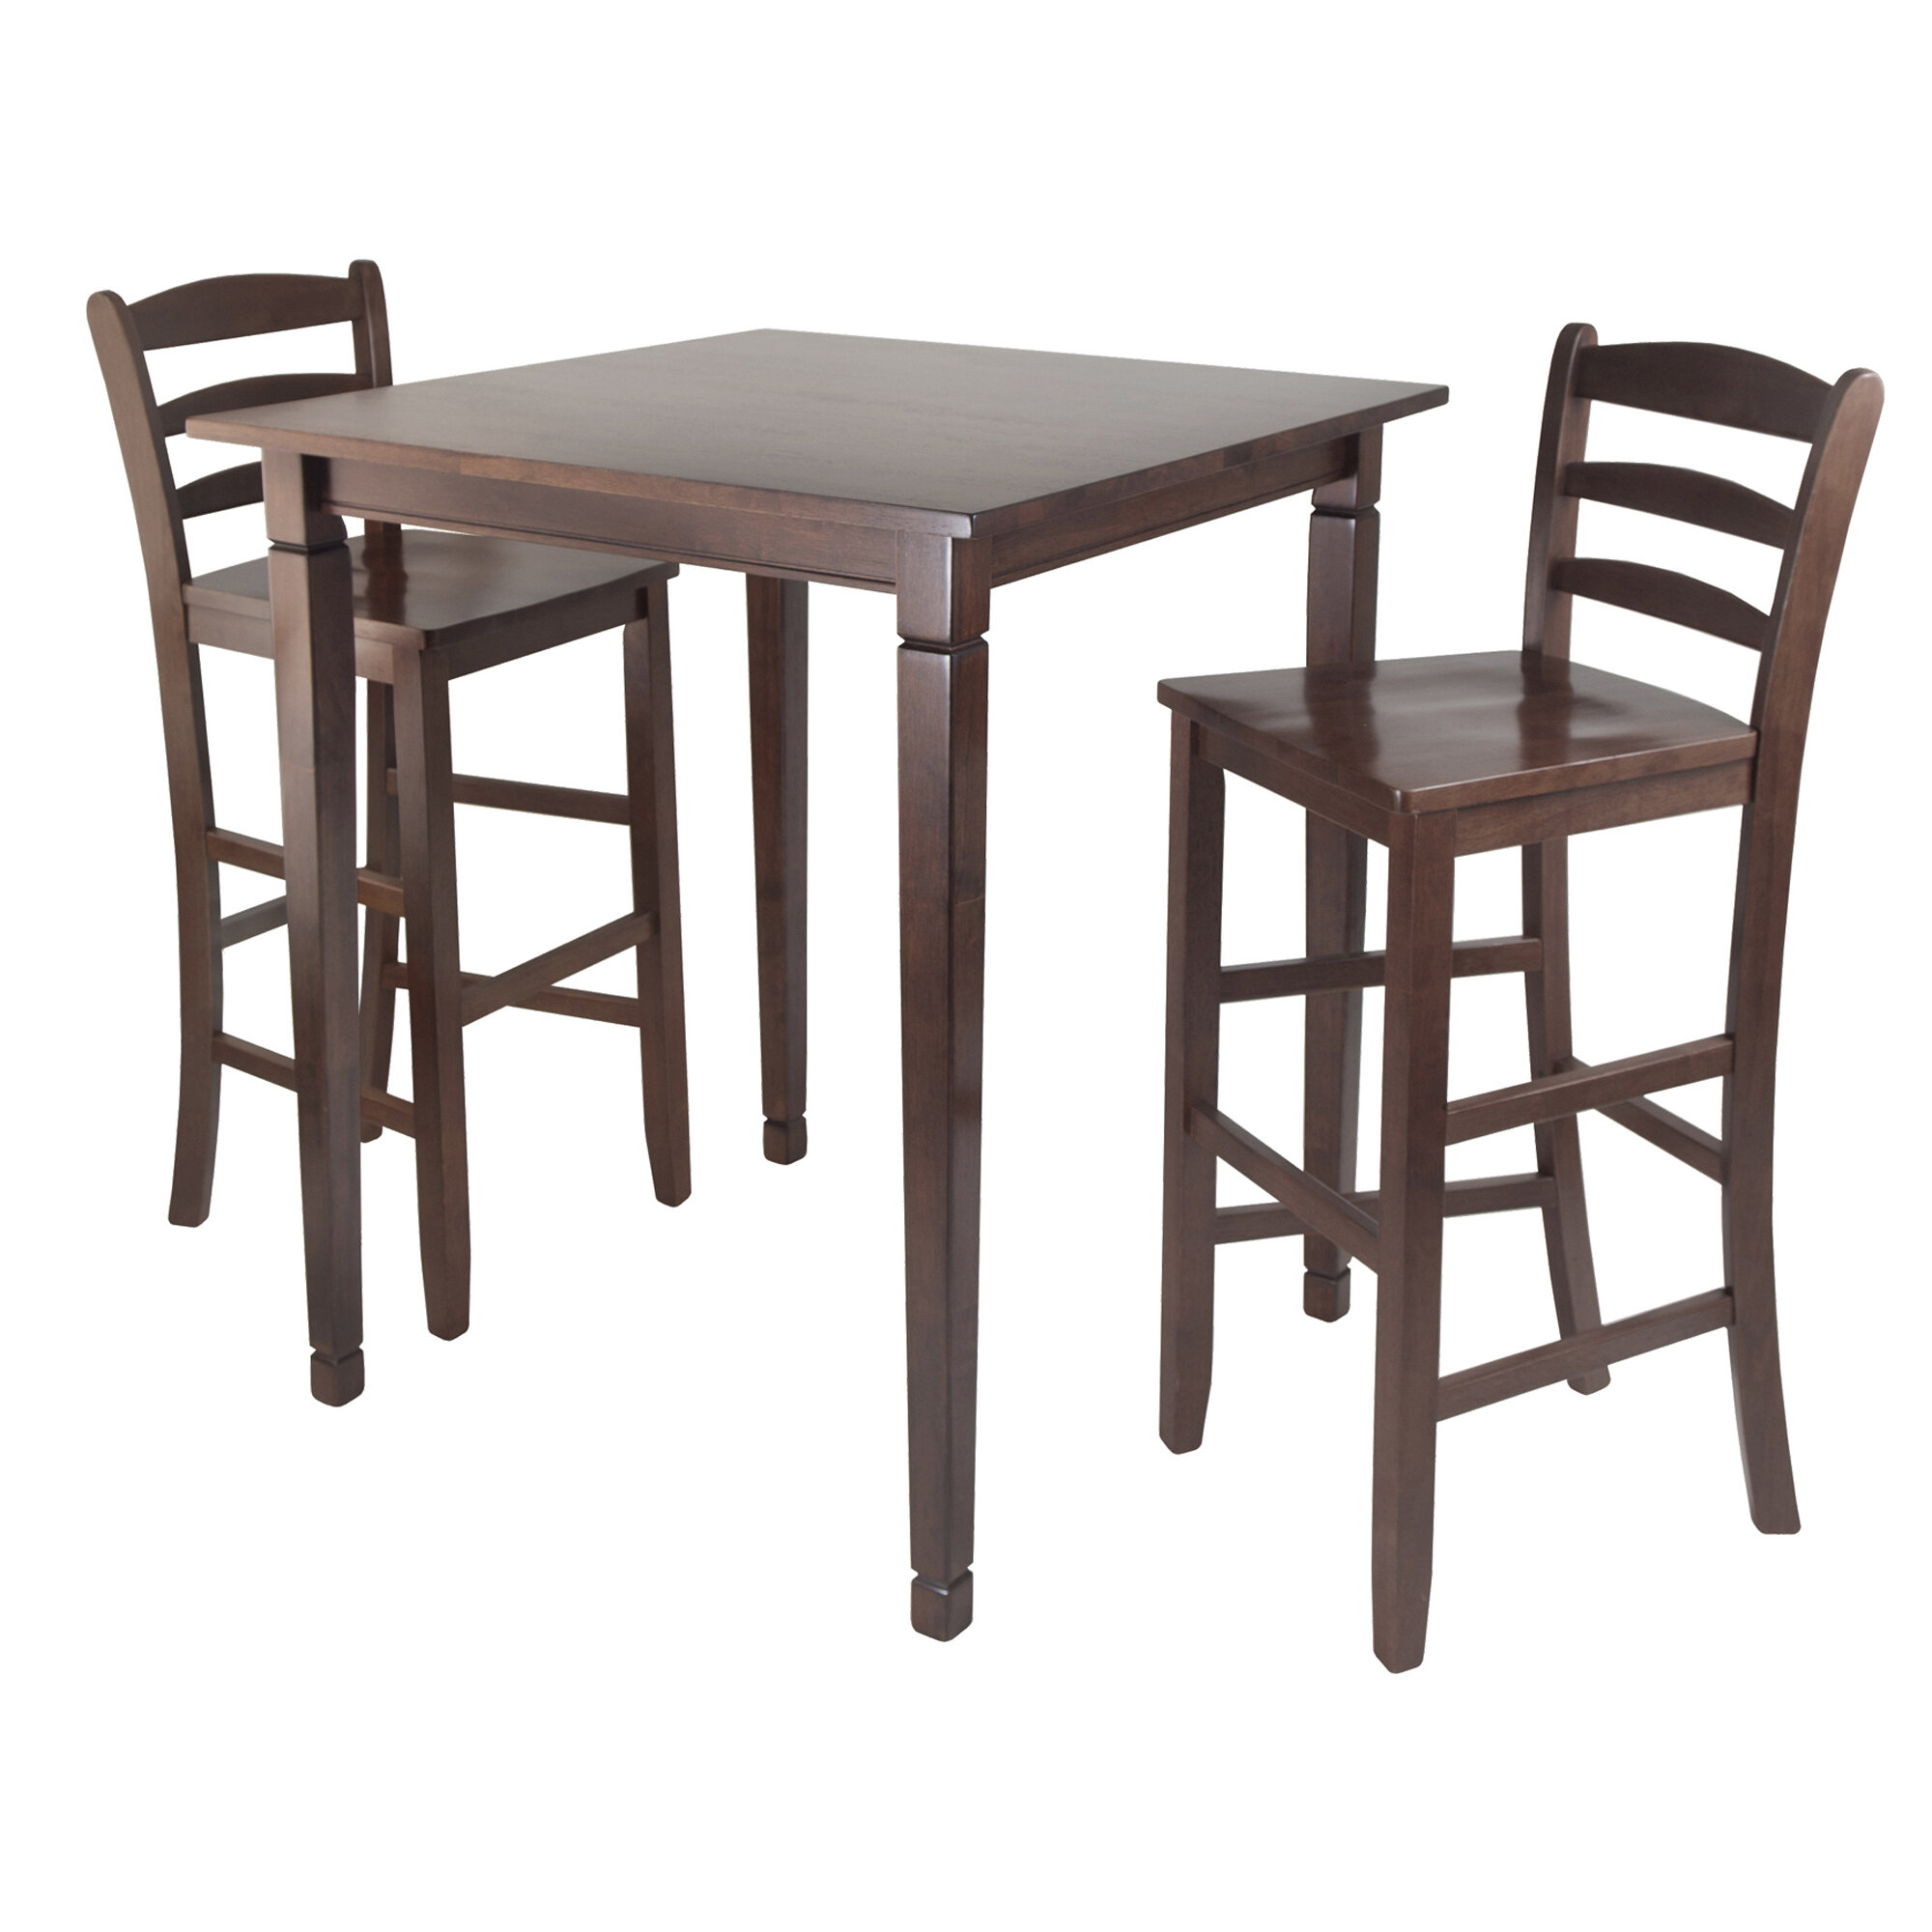 Hemphill 3 Piece Counter Height Pub Table Set With Most Current Bettencourt 3 Piece Counter Height Solid Wood Dining Sets (View 6 of 20)